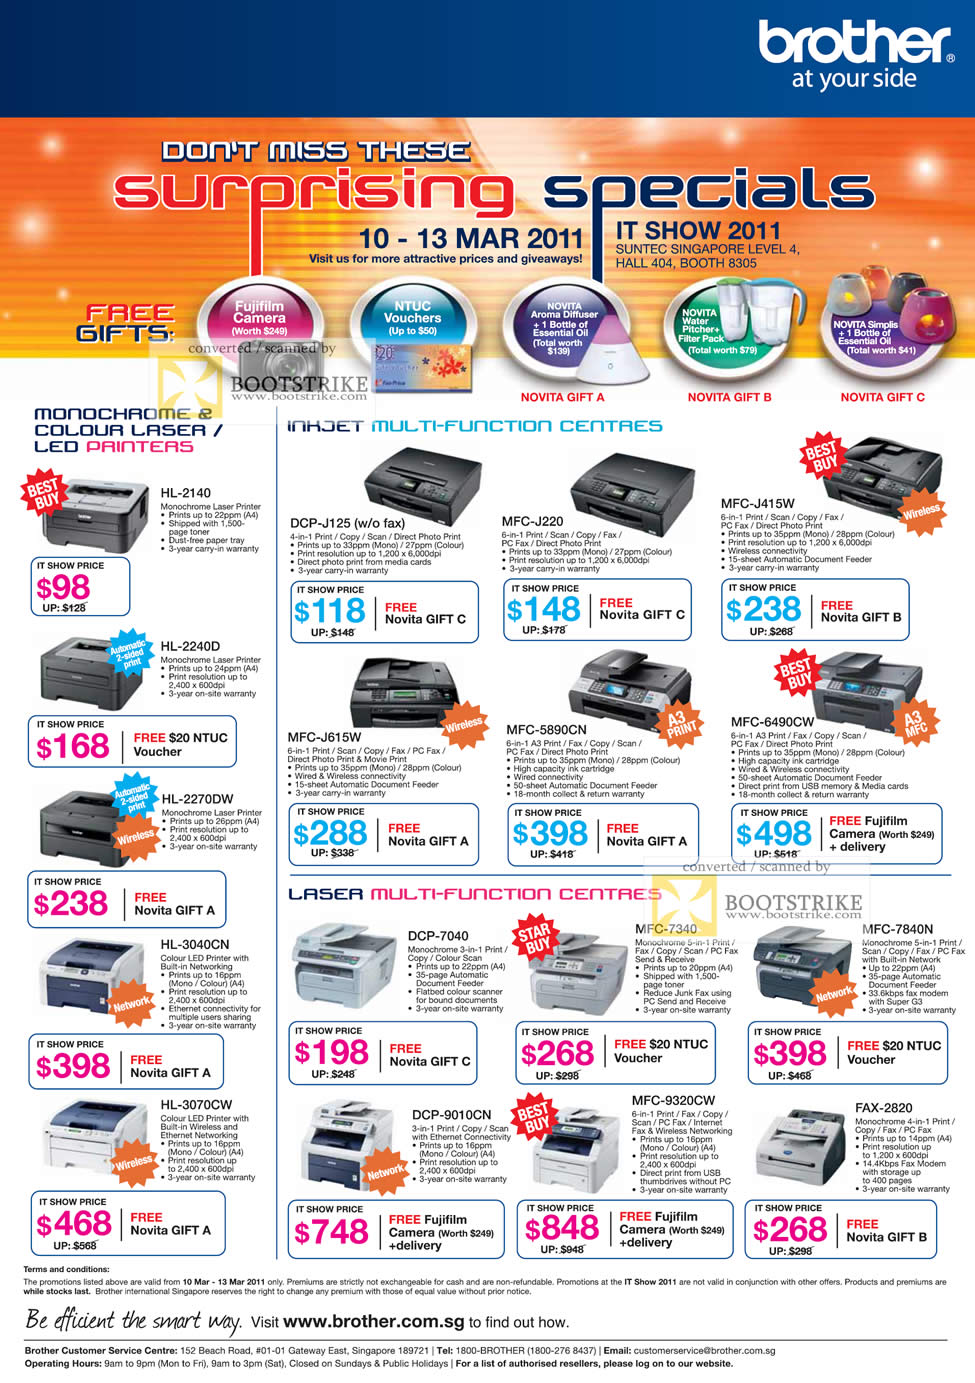 IT Show 2011 price list image brochure of Brother Printers Laser HL-2140 2240D 2270DW 3060CW Inkjet DCP-J125 MFC J220 J615W 5890CN 6490CW DCP 7040 7340 7840N 9010CN 9320CW FAX-2820